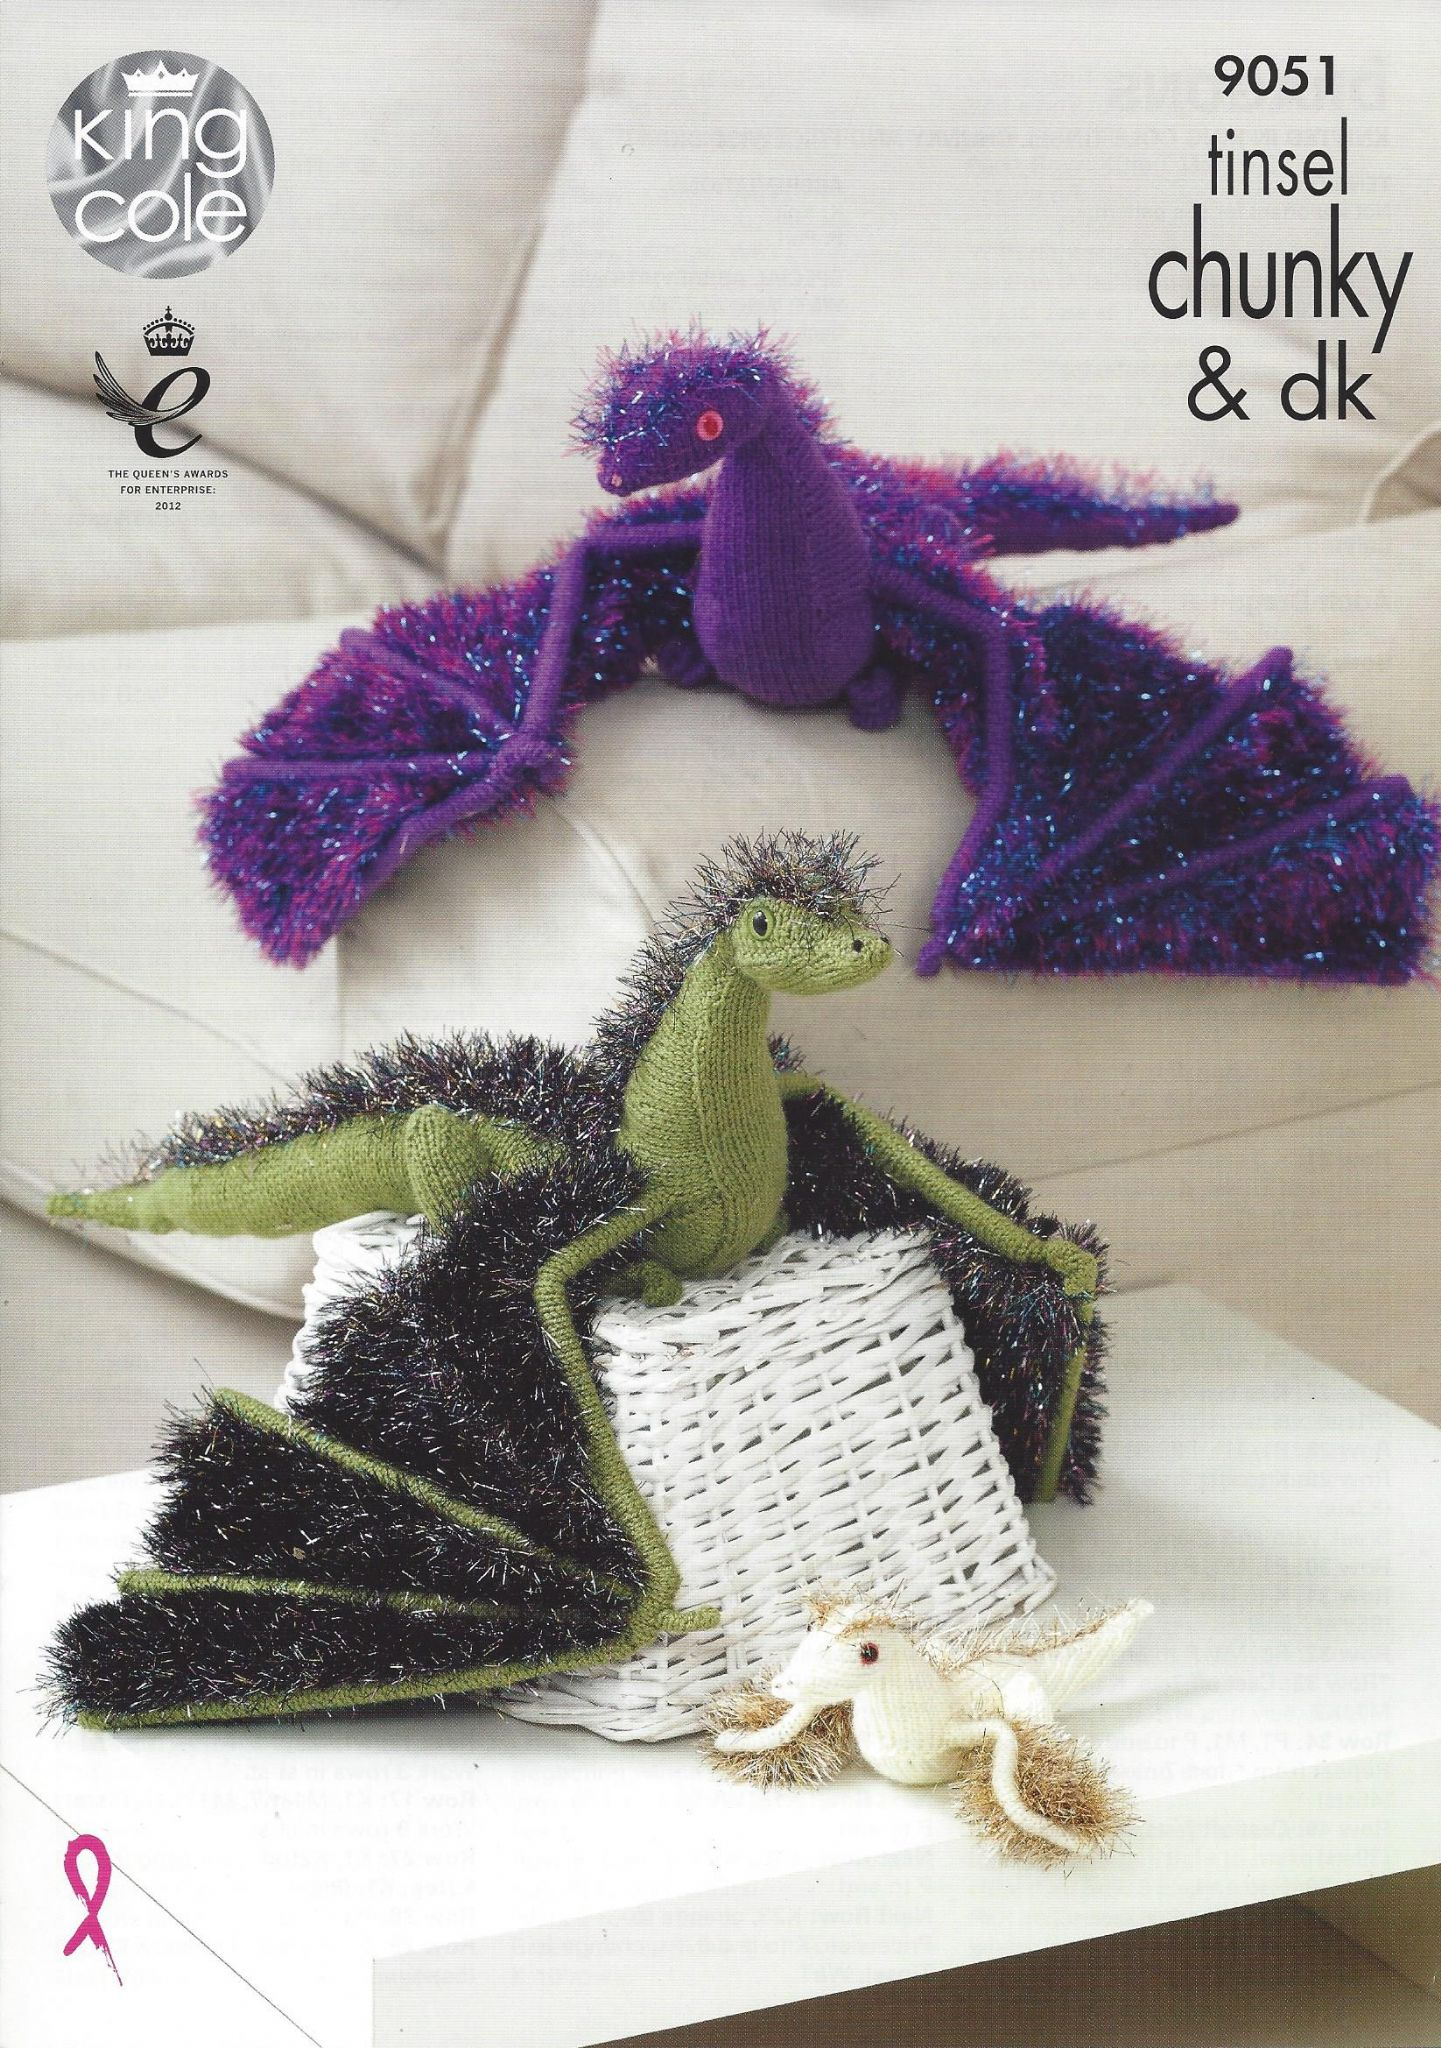 Knitting Patterns For King Cole Tinsel : King Cole Tinsel Chunky - 9051 Dragons Knitting Pattern